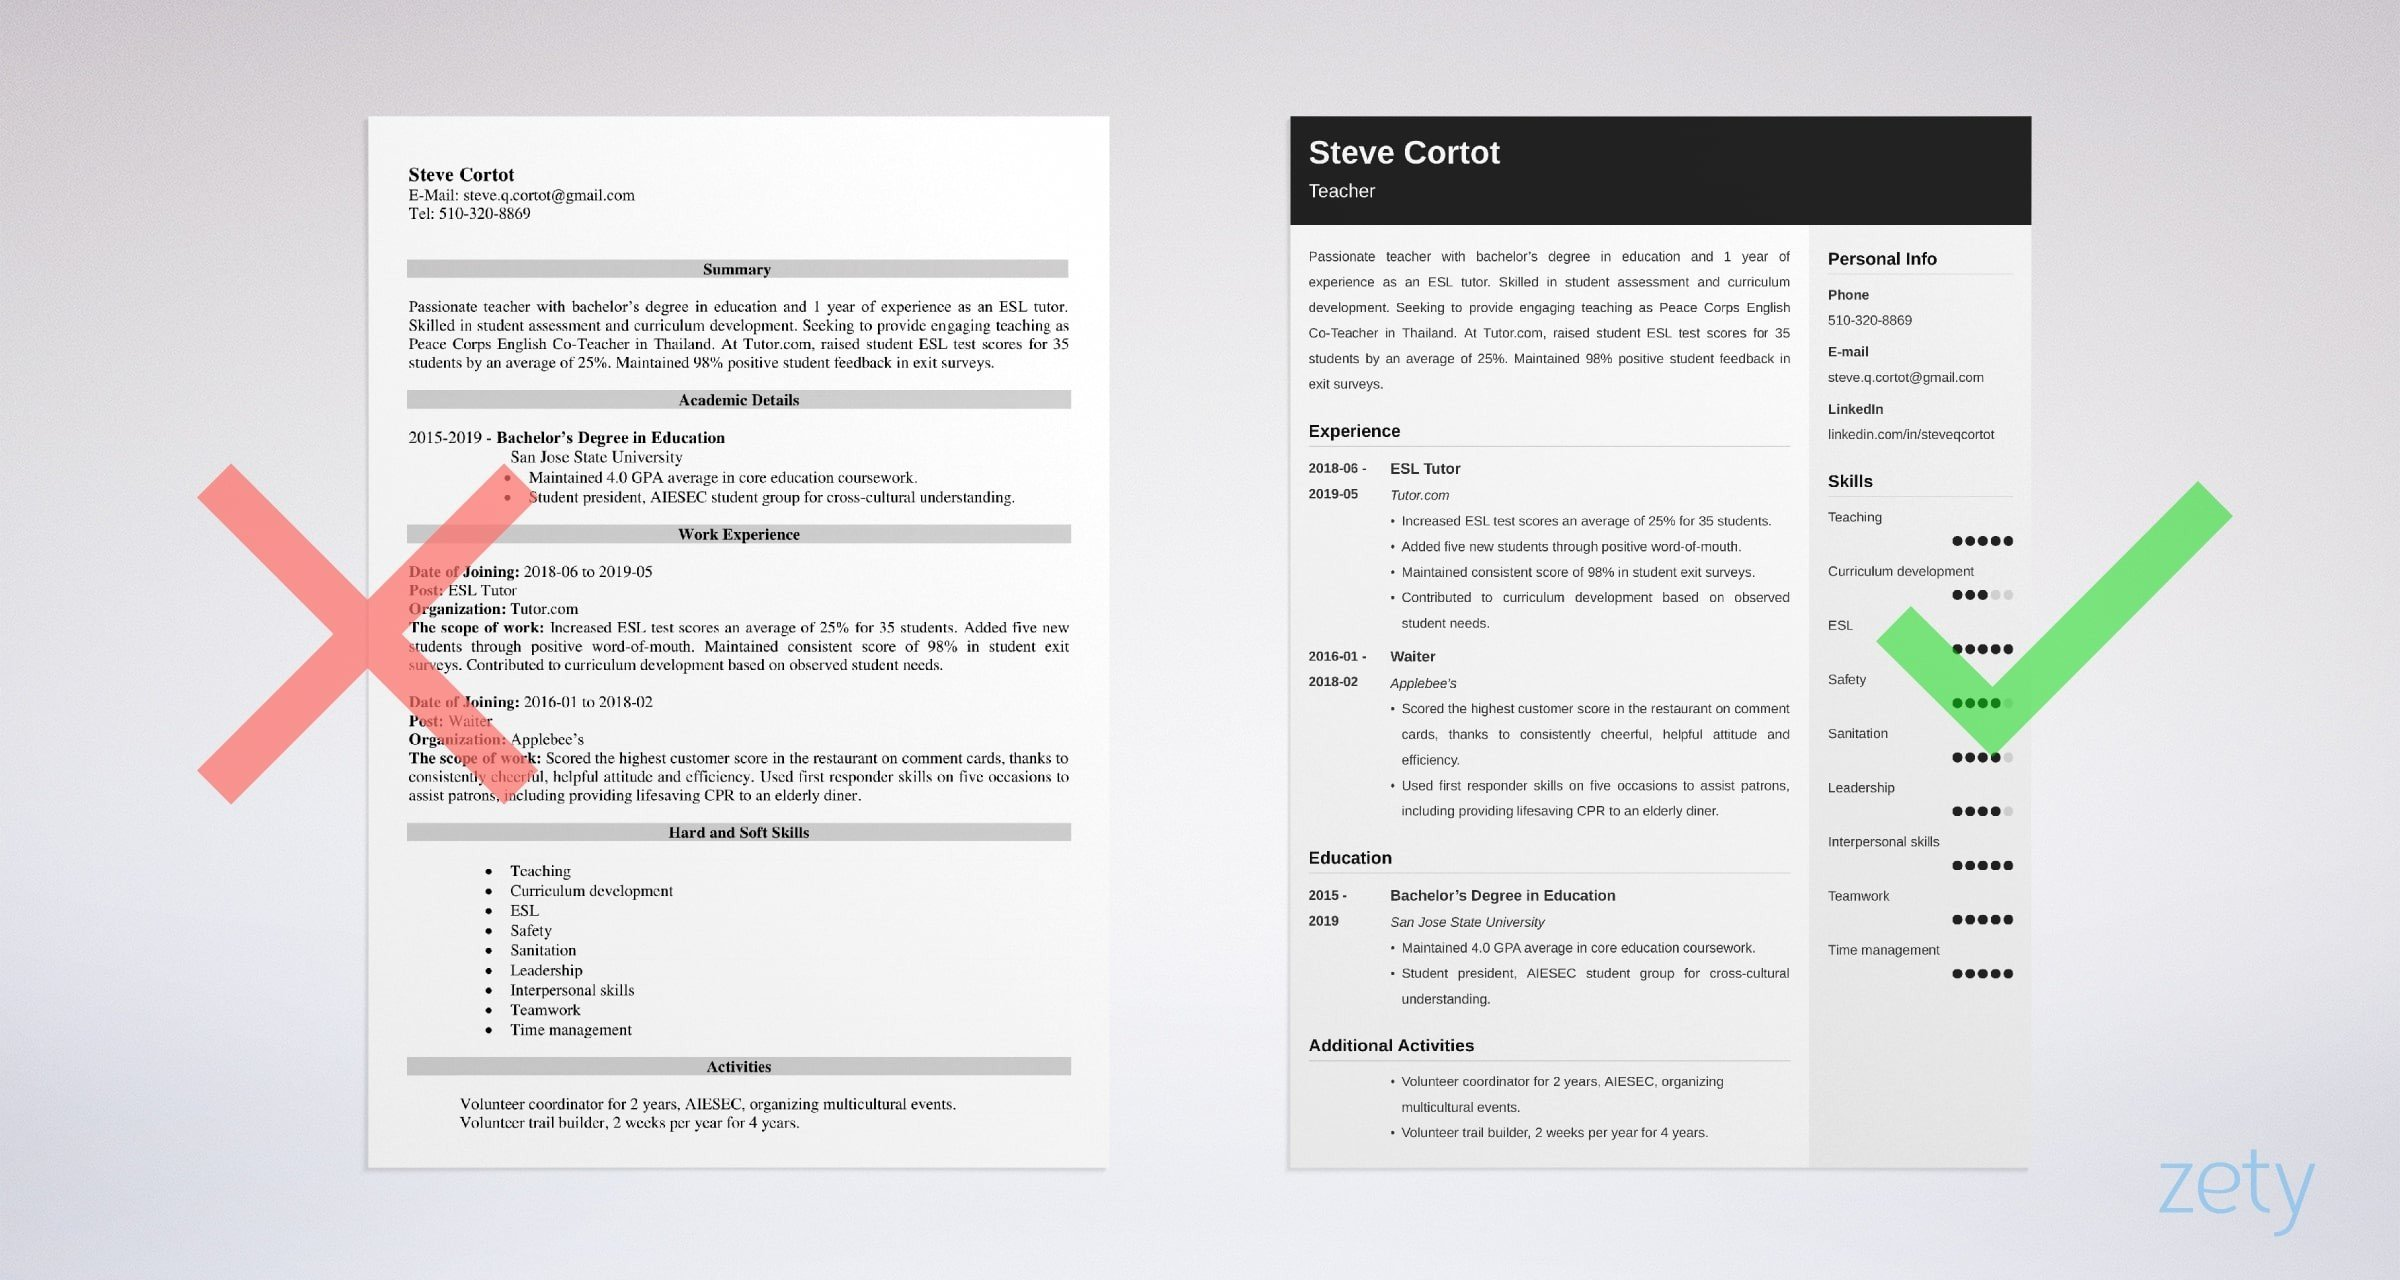 Peace Corps Resume Sample Writing Guide 20 Tips